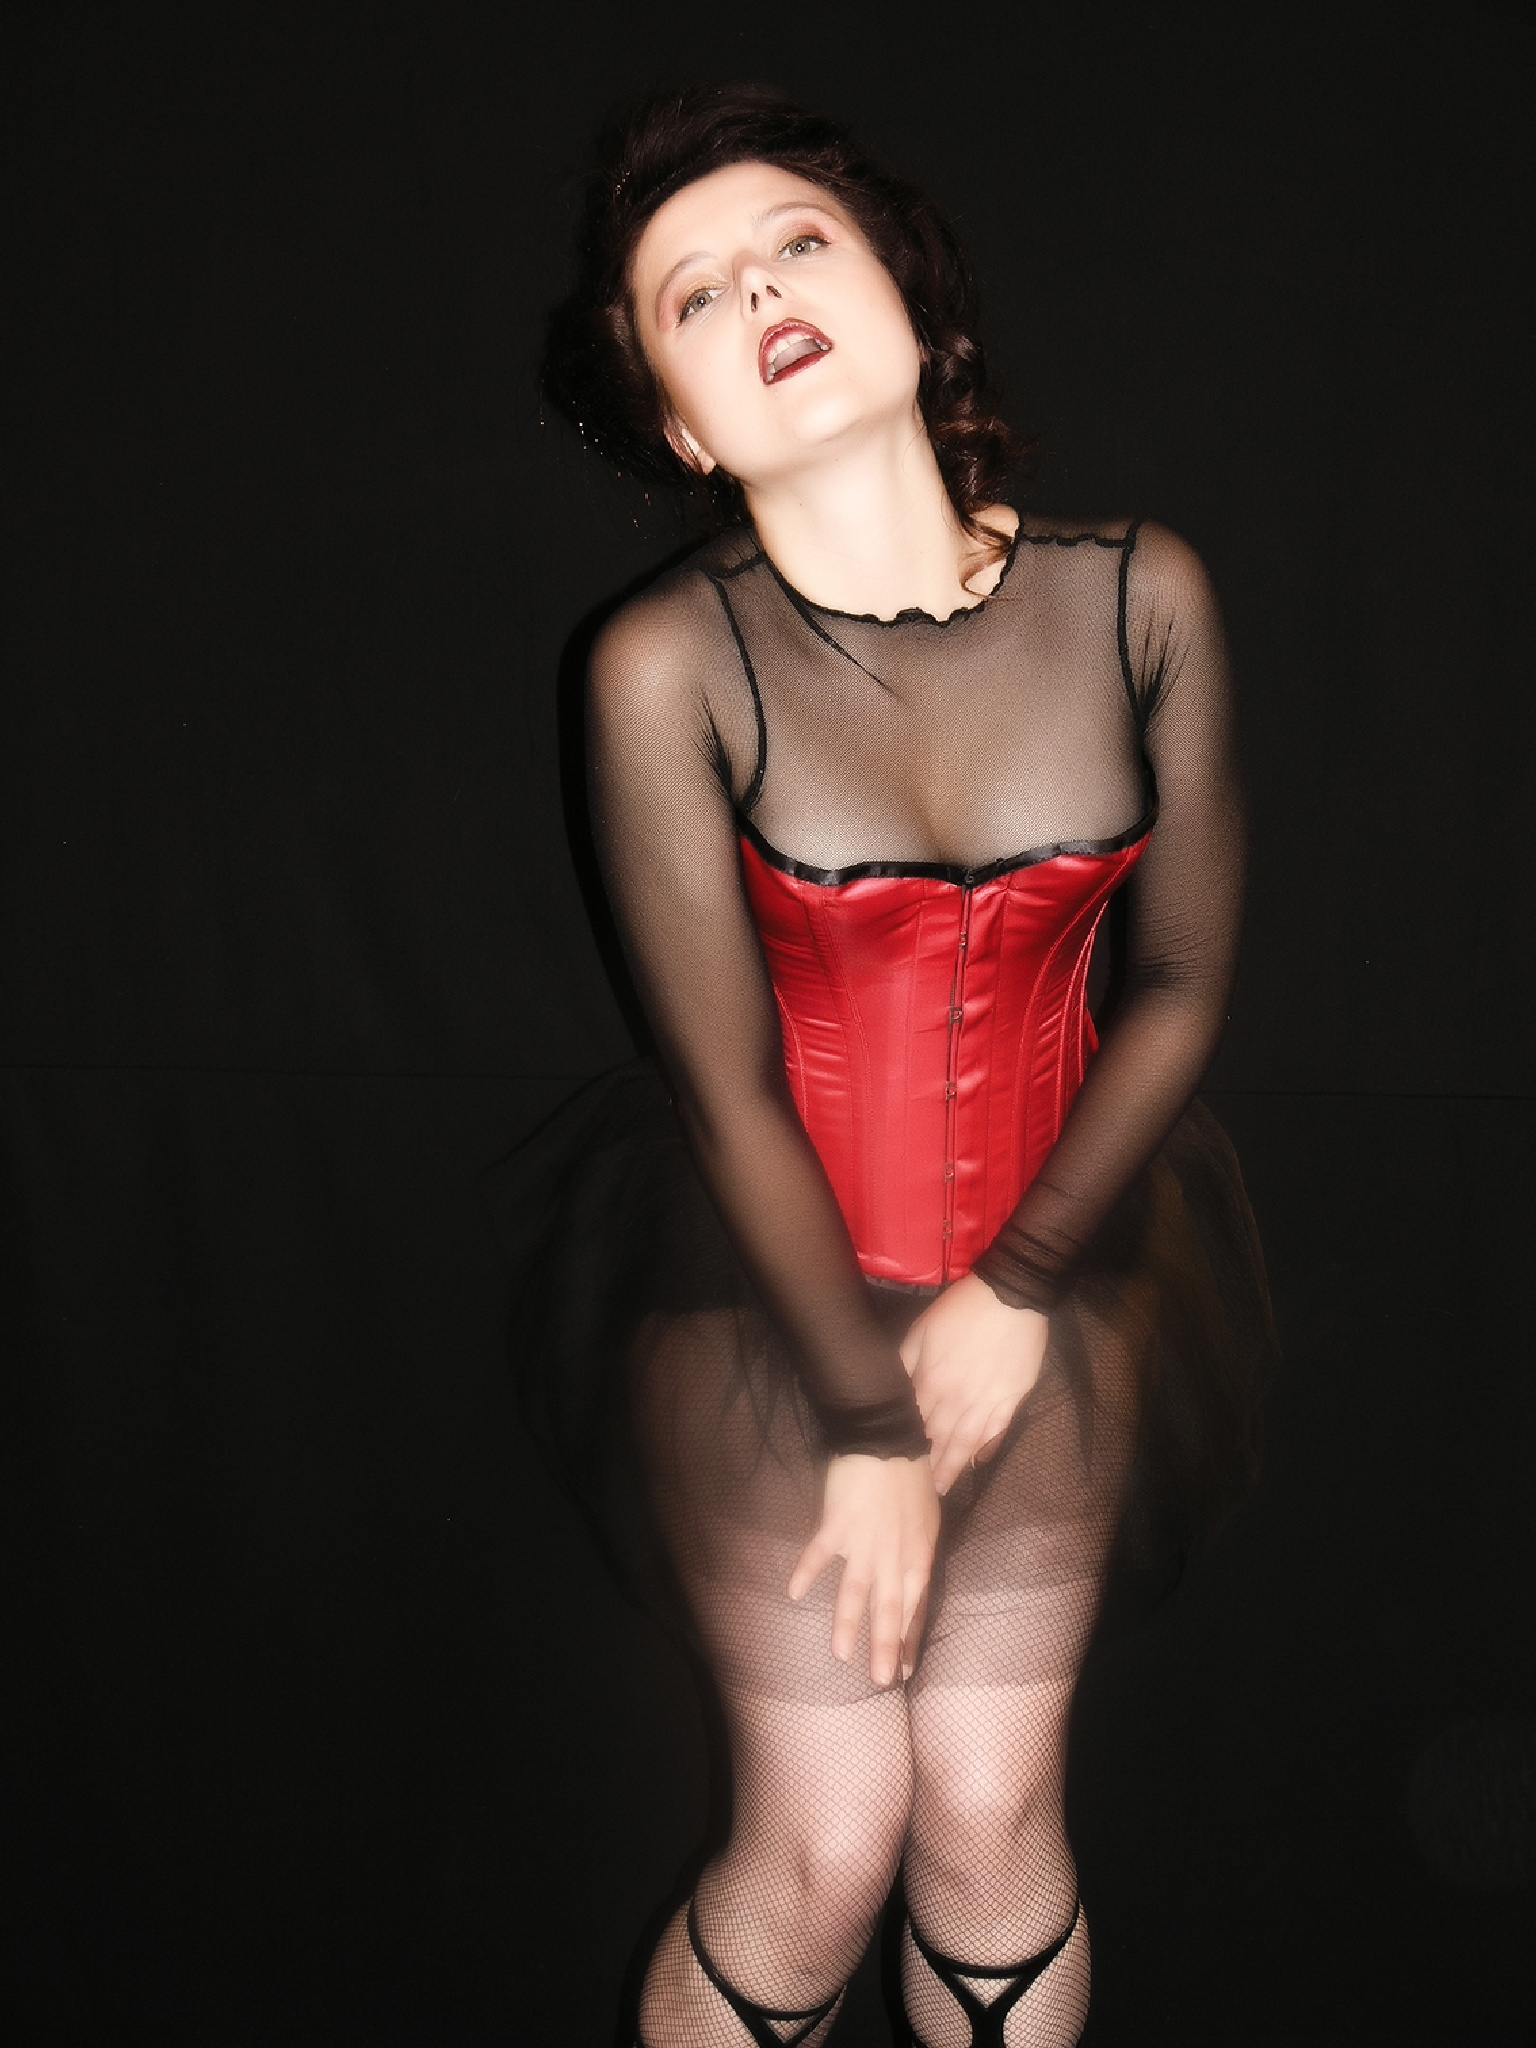 red corset girl 2 by Hybryds